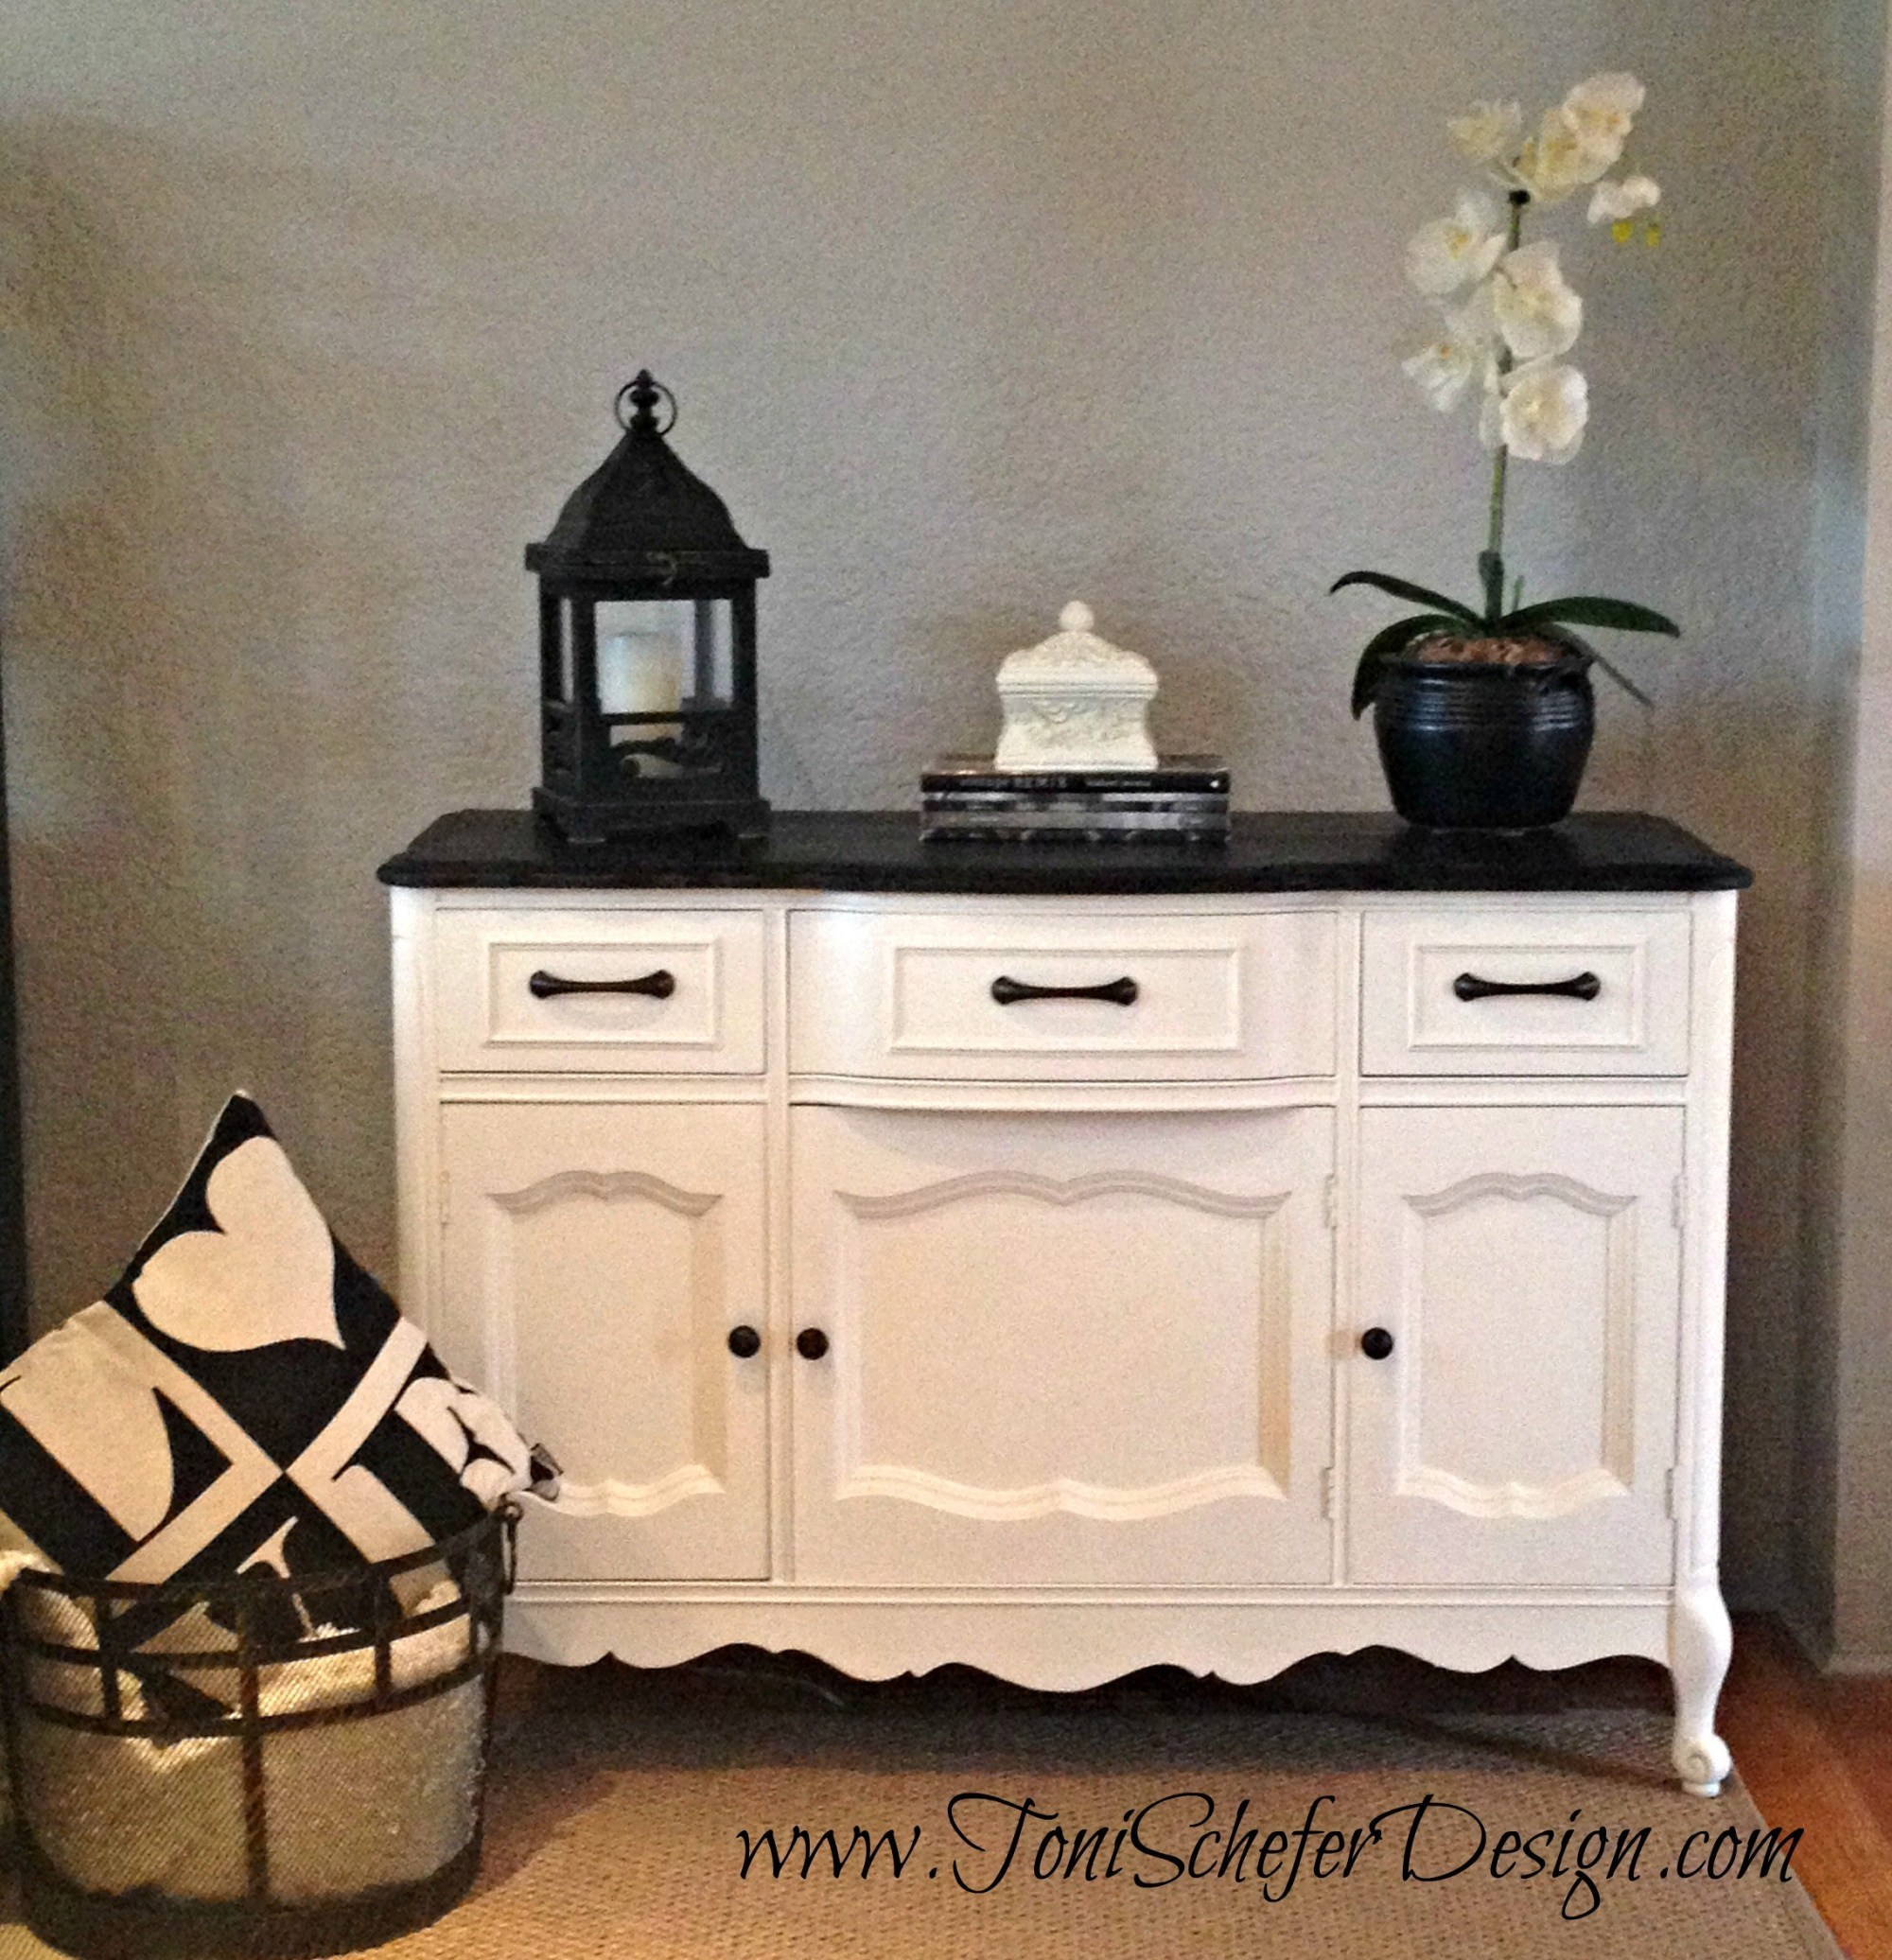 I used Ebony stain on the top and    Annie Sloan Old White    Chalk Paint on the rest of the piece and here it is finished.